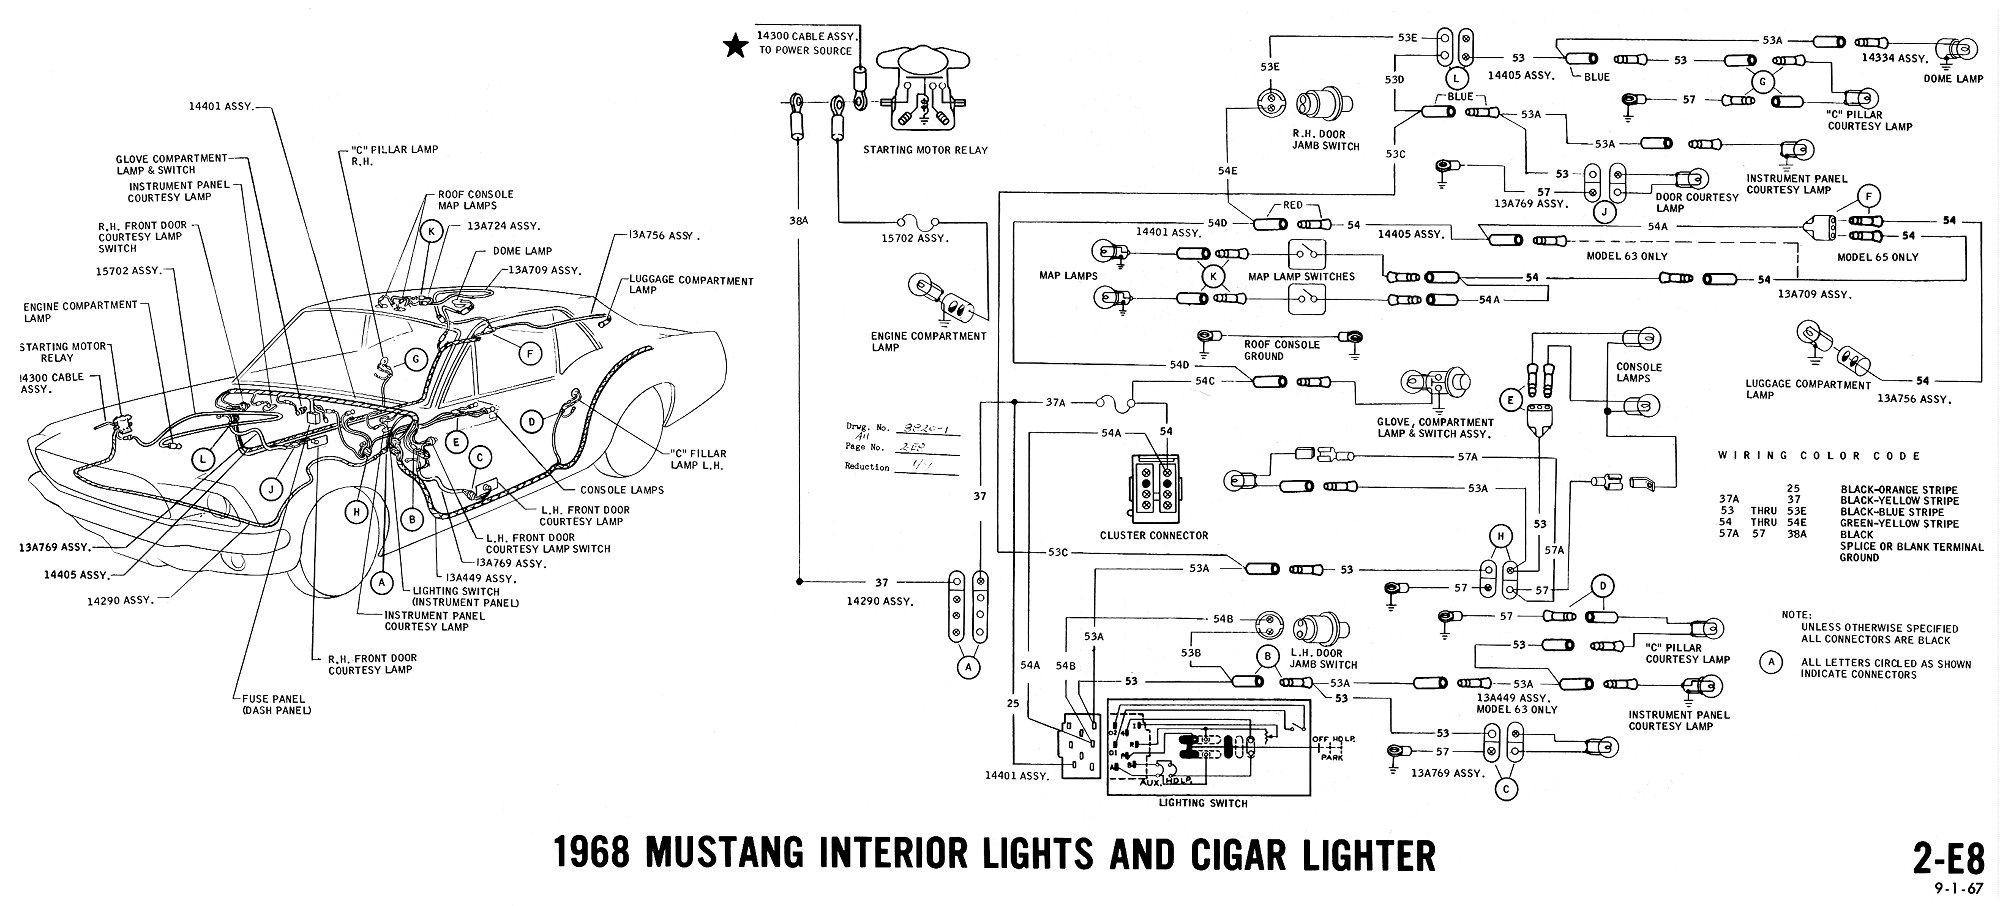 Camaro Steering Column Wiring Diagram Free Download Wiring Diagrams